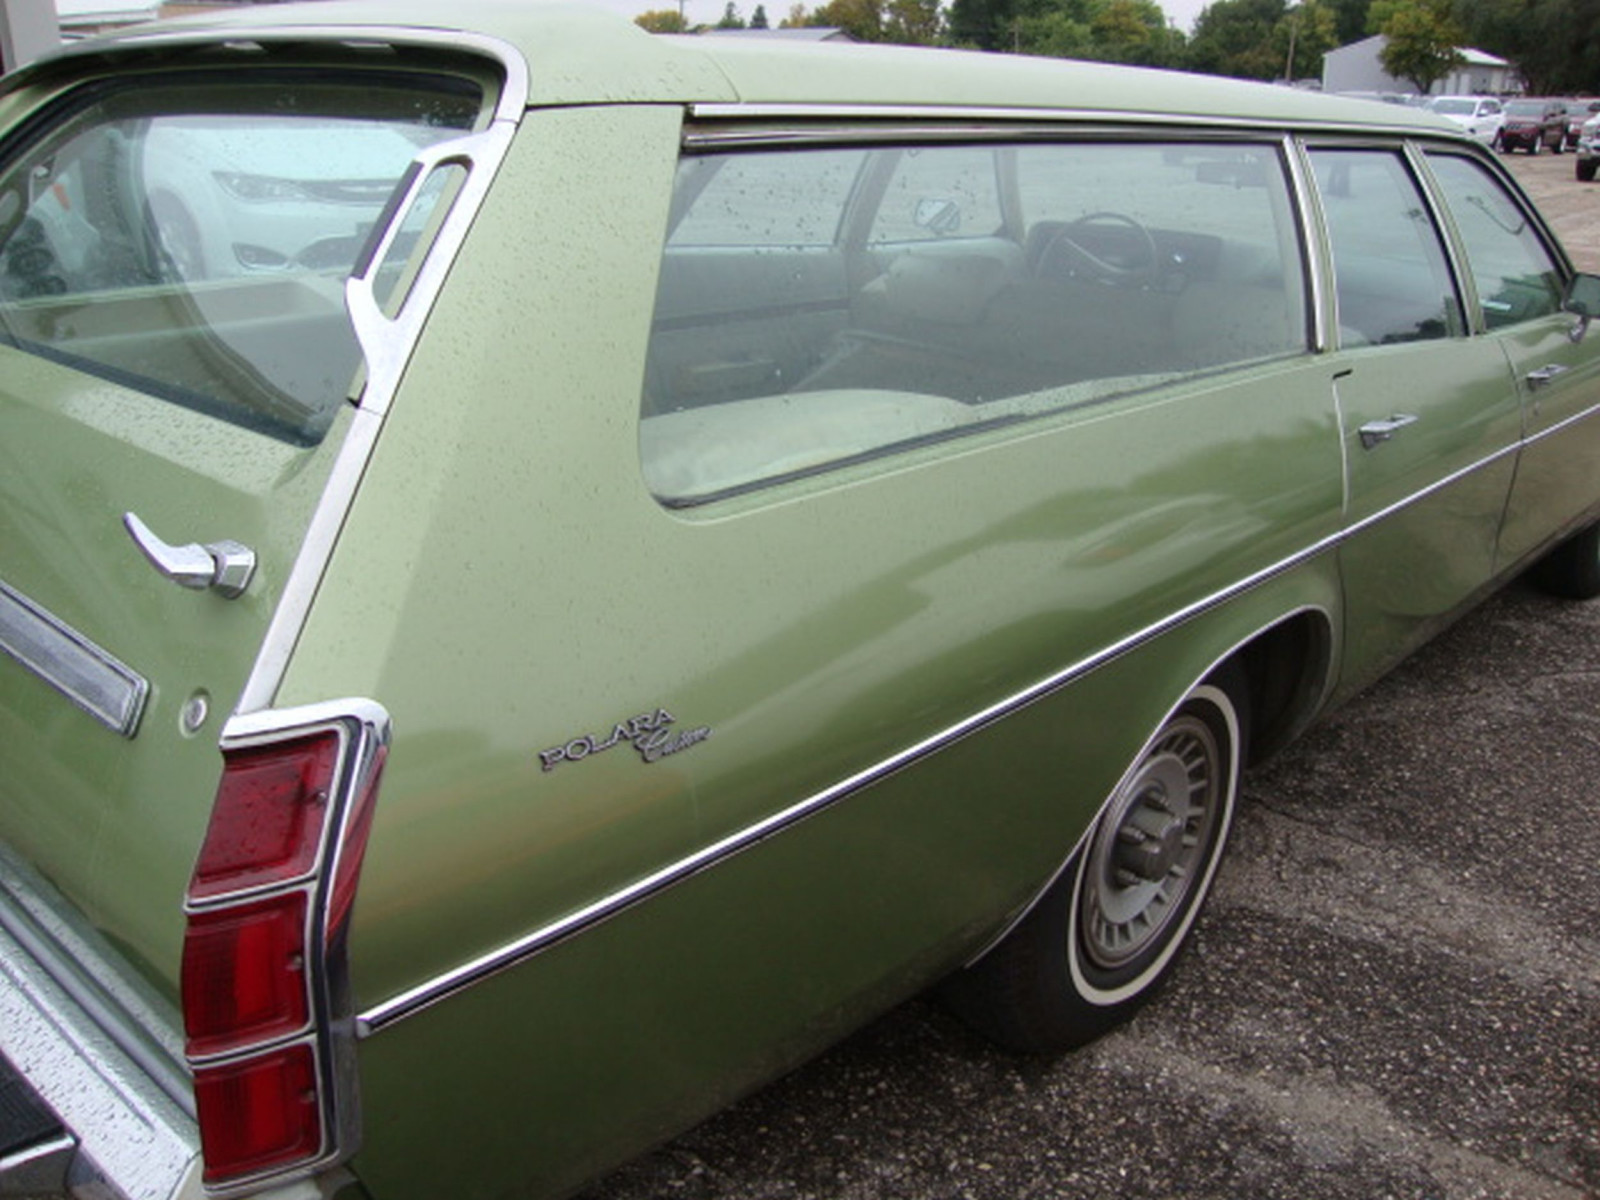 1973 Dodge Polara Custom Wagon - Image 5